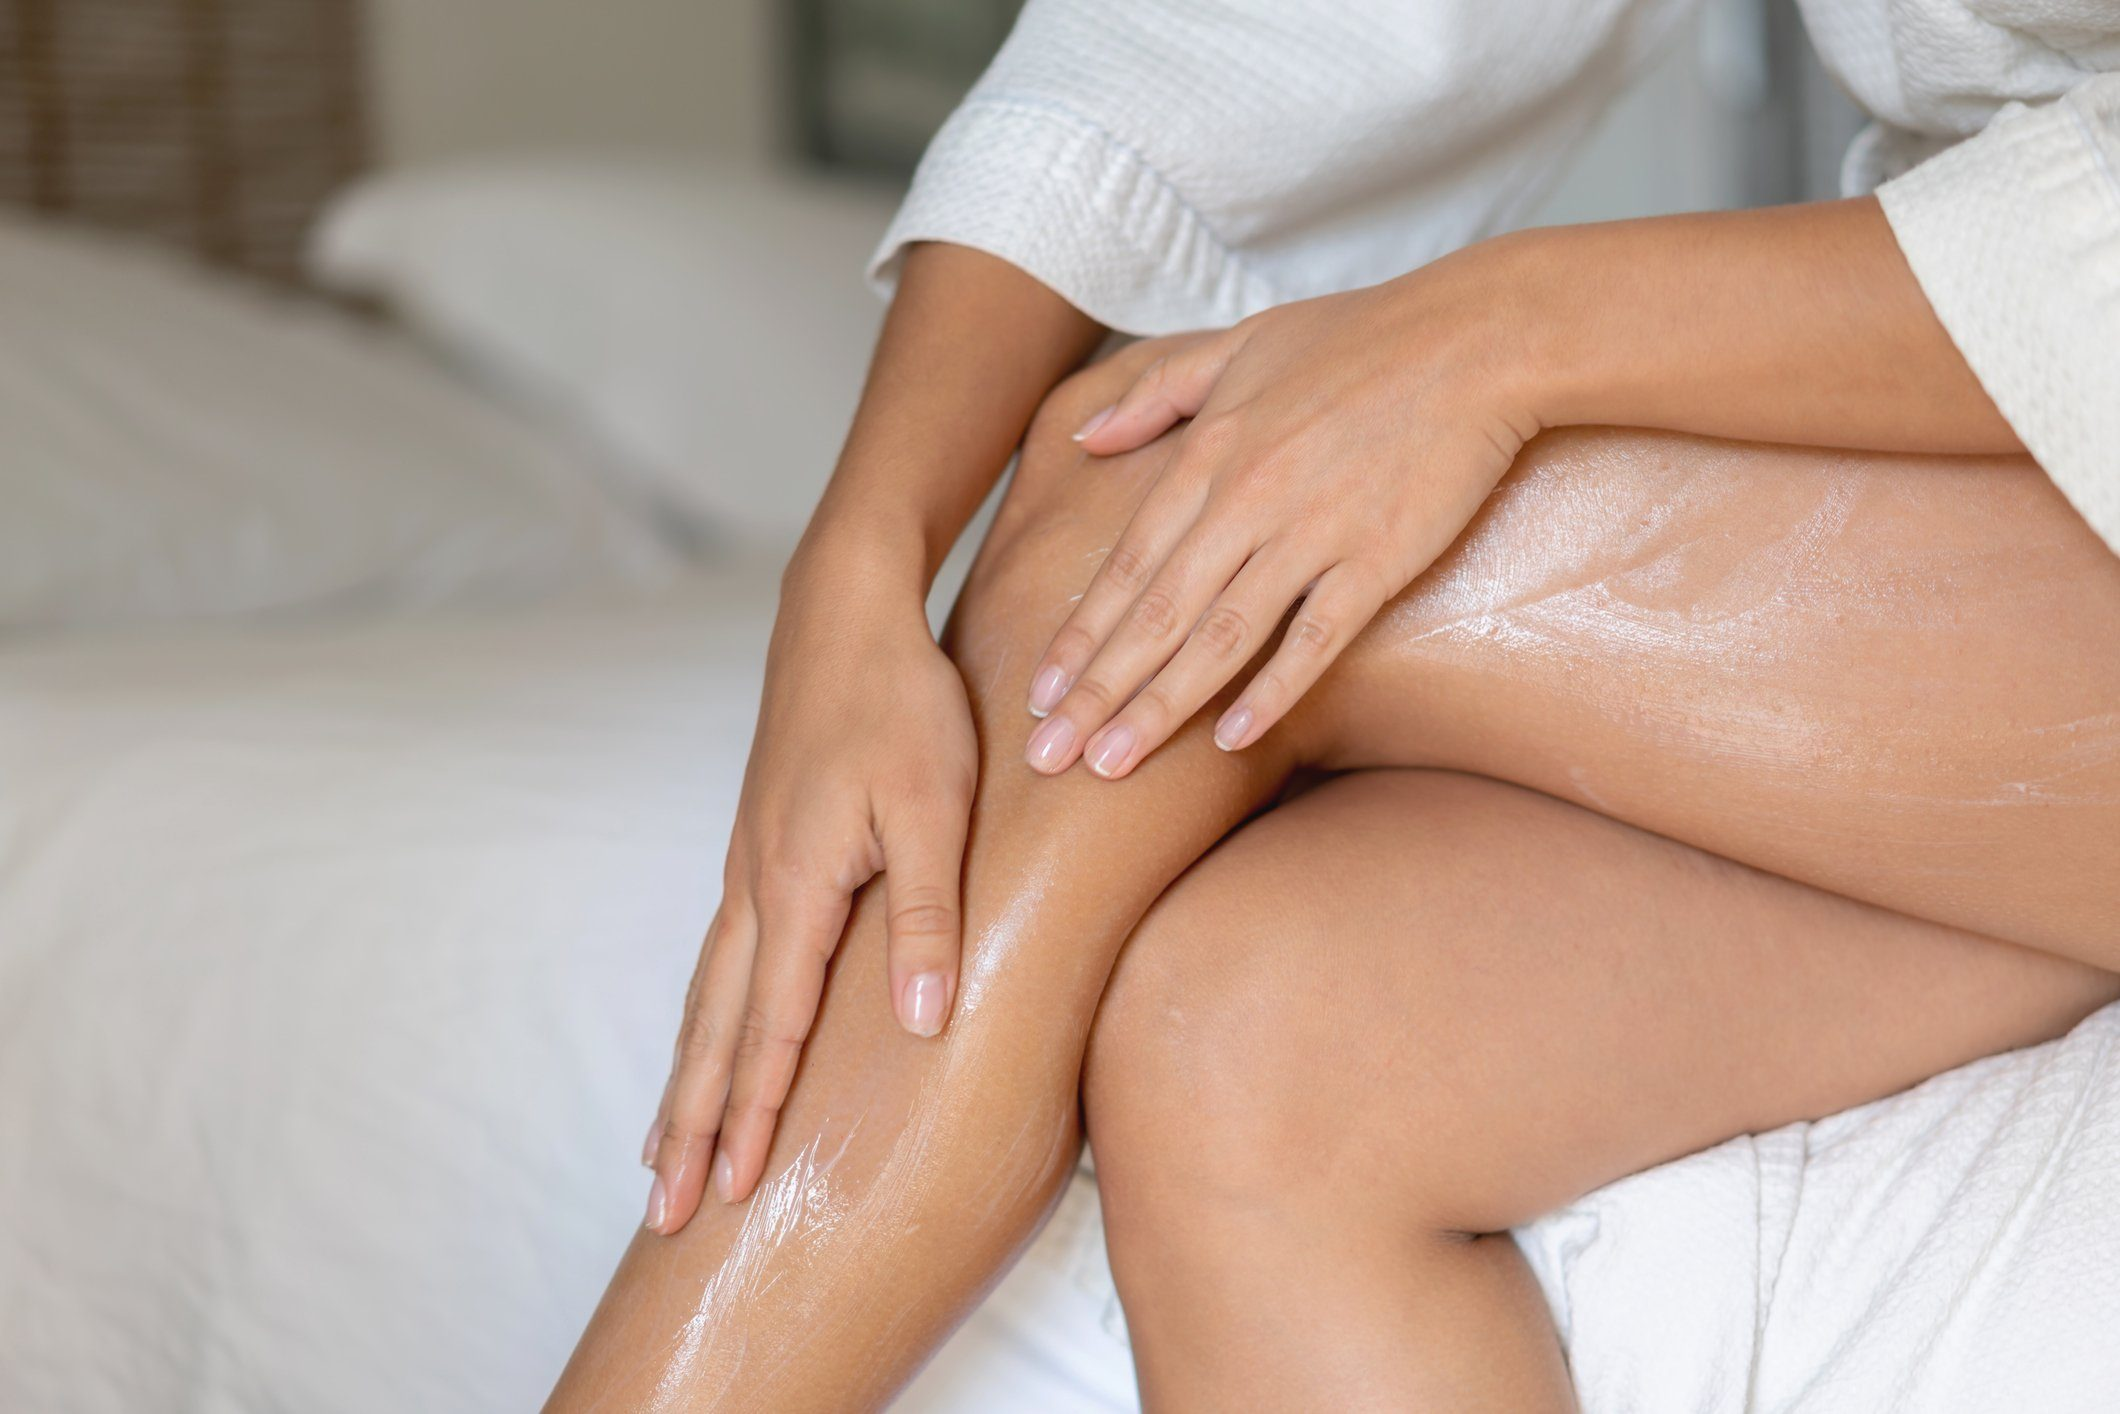 beauty products | applying body oil moisturizer to legs